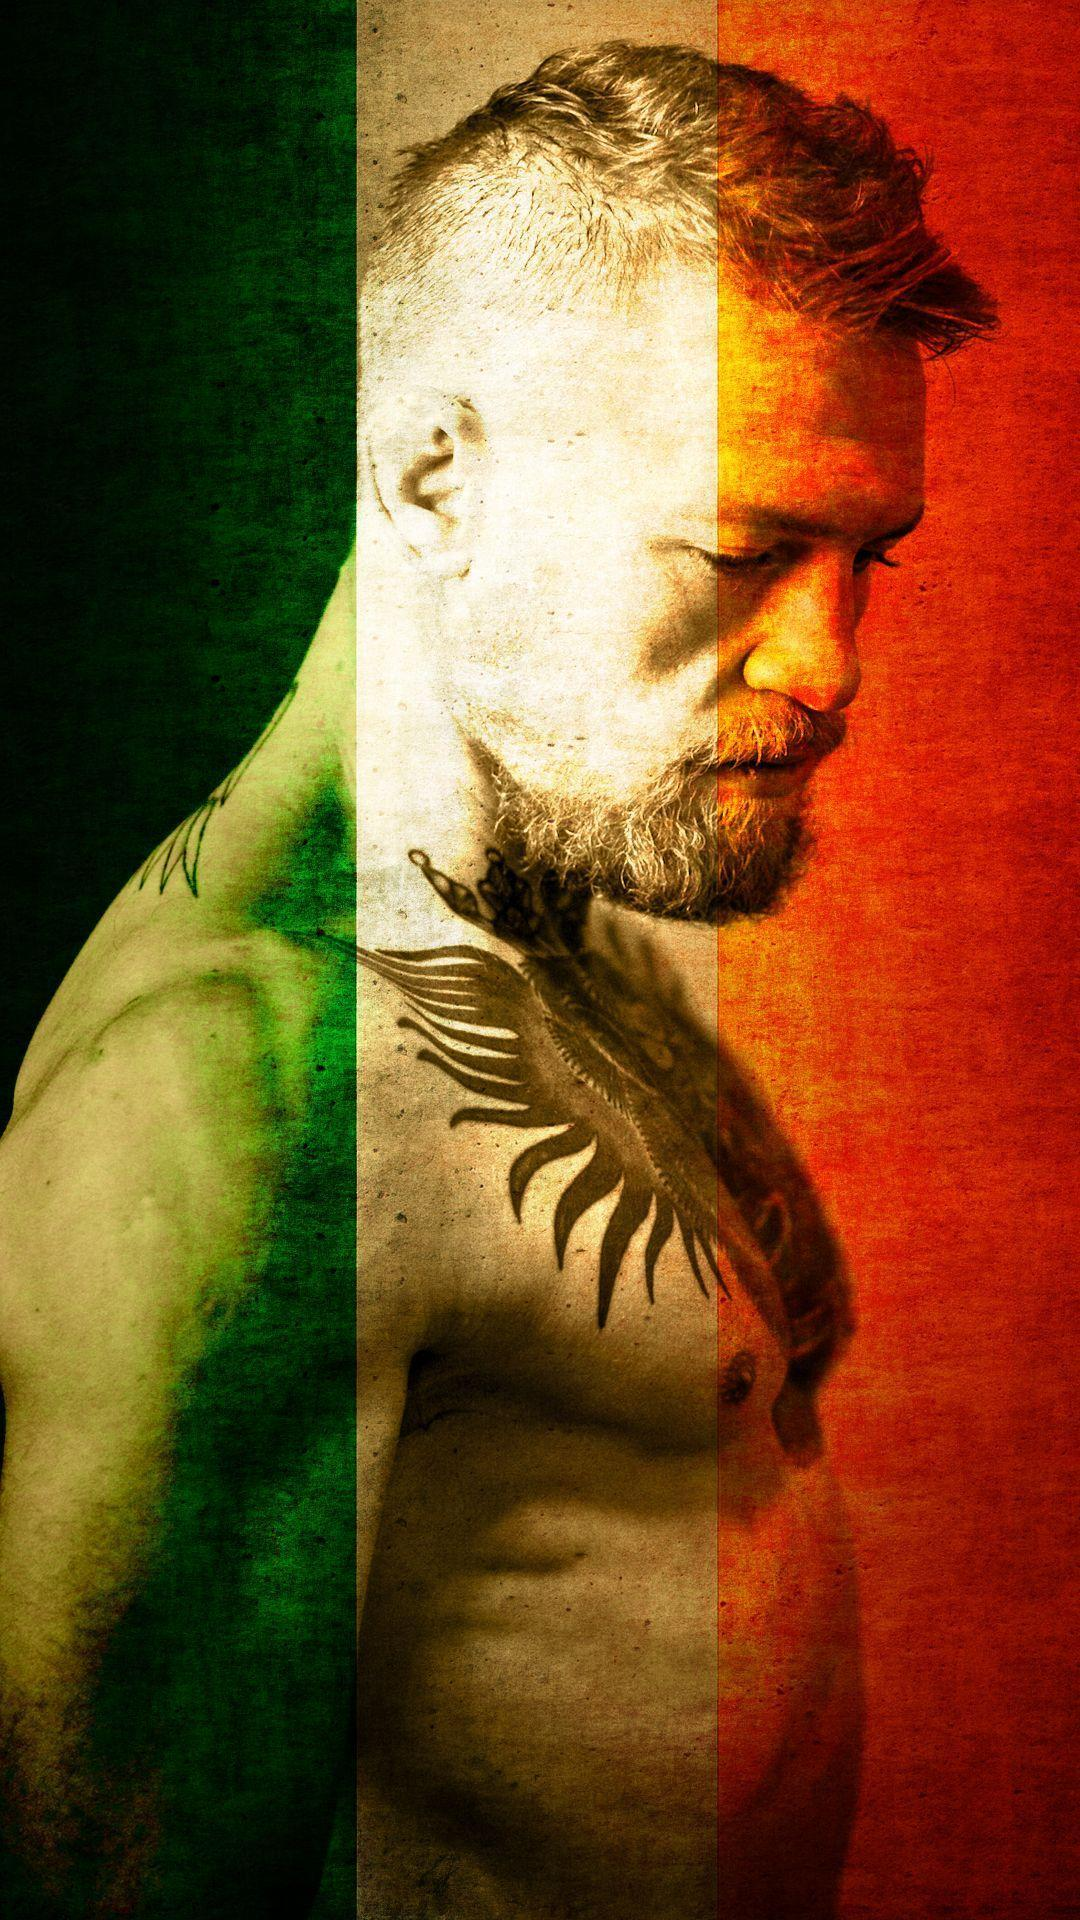 Conor Mcgregor HD Wallpaper For Your Mobile Phone